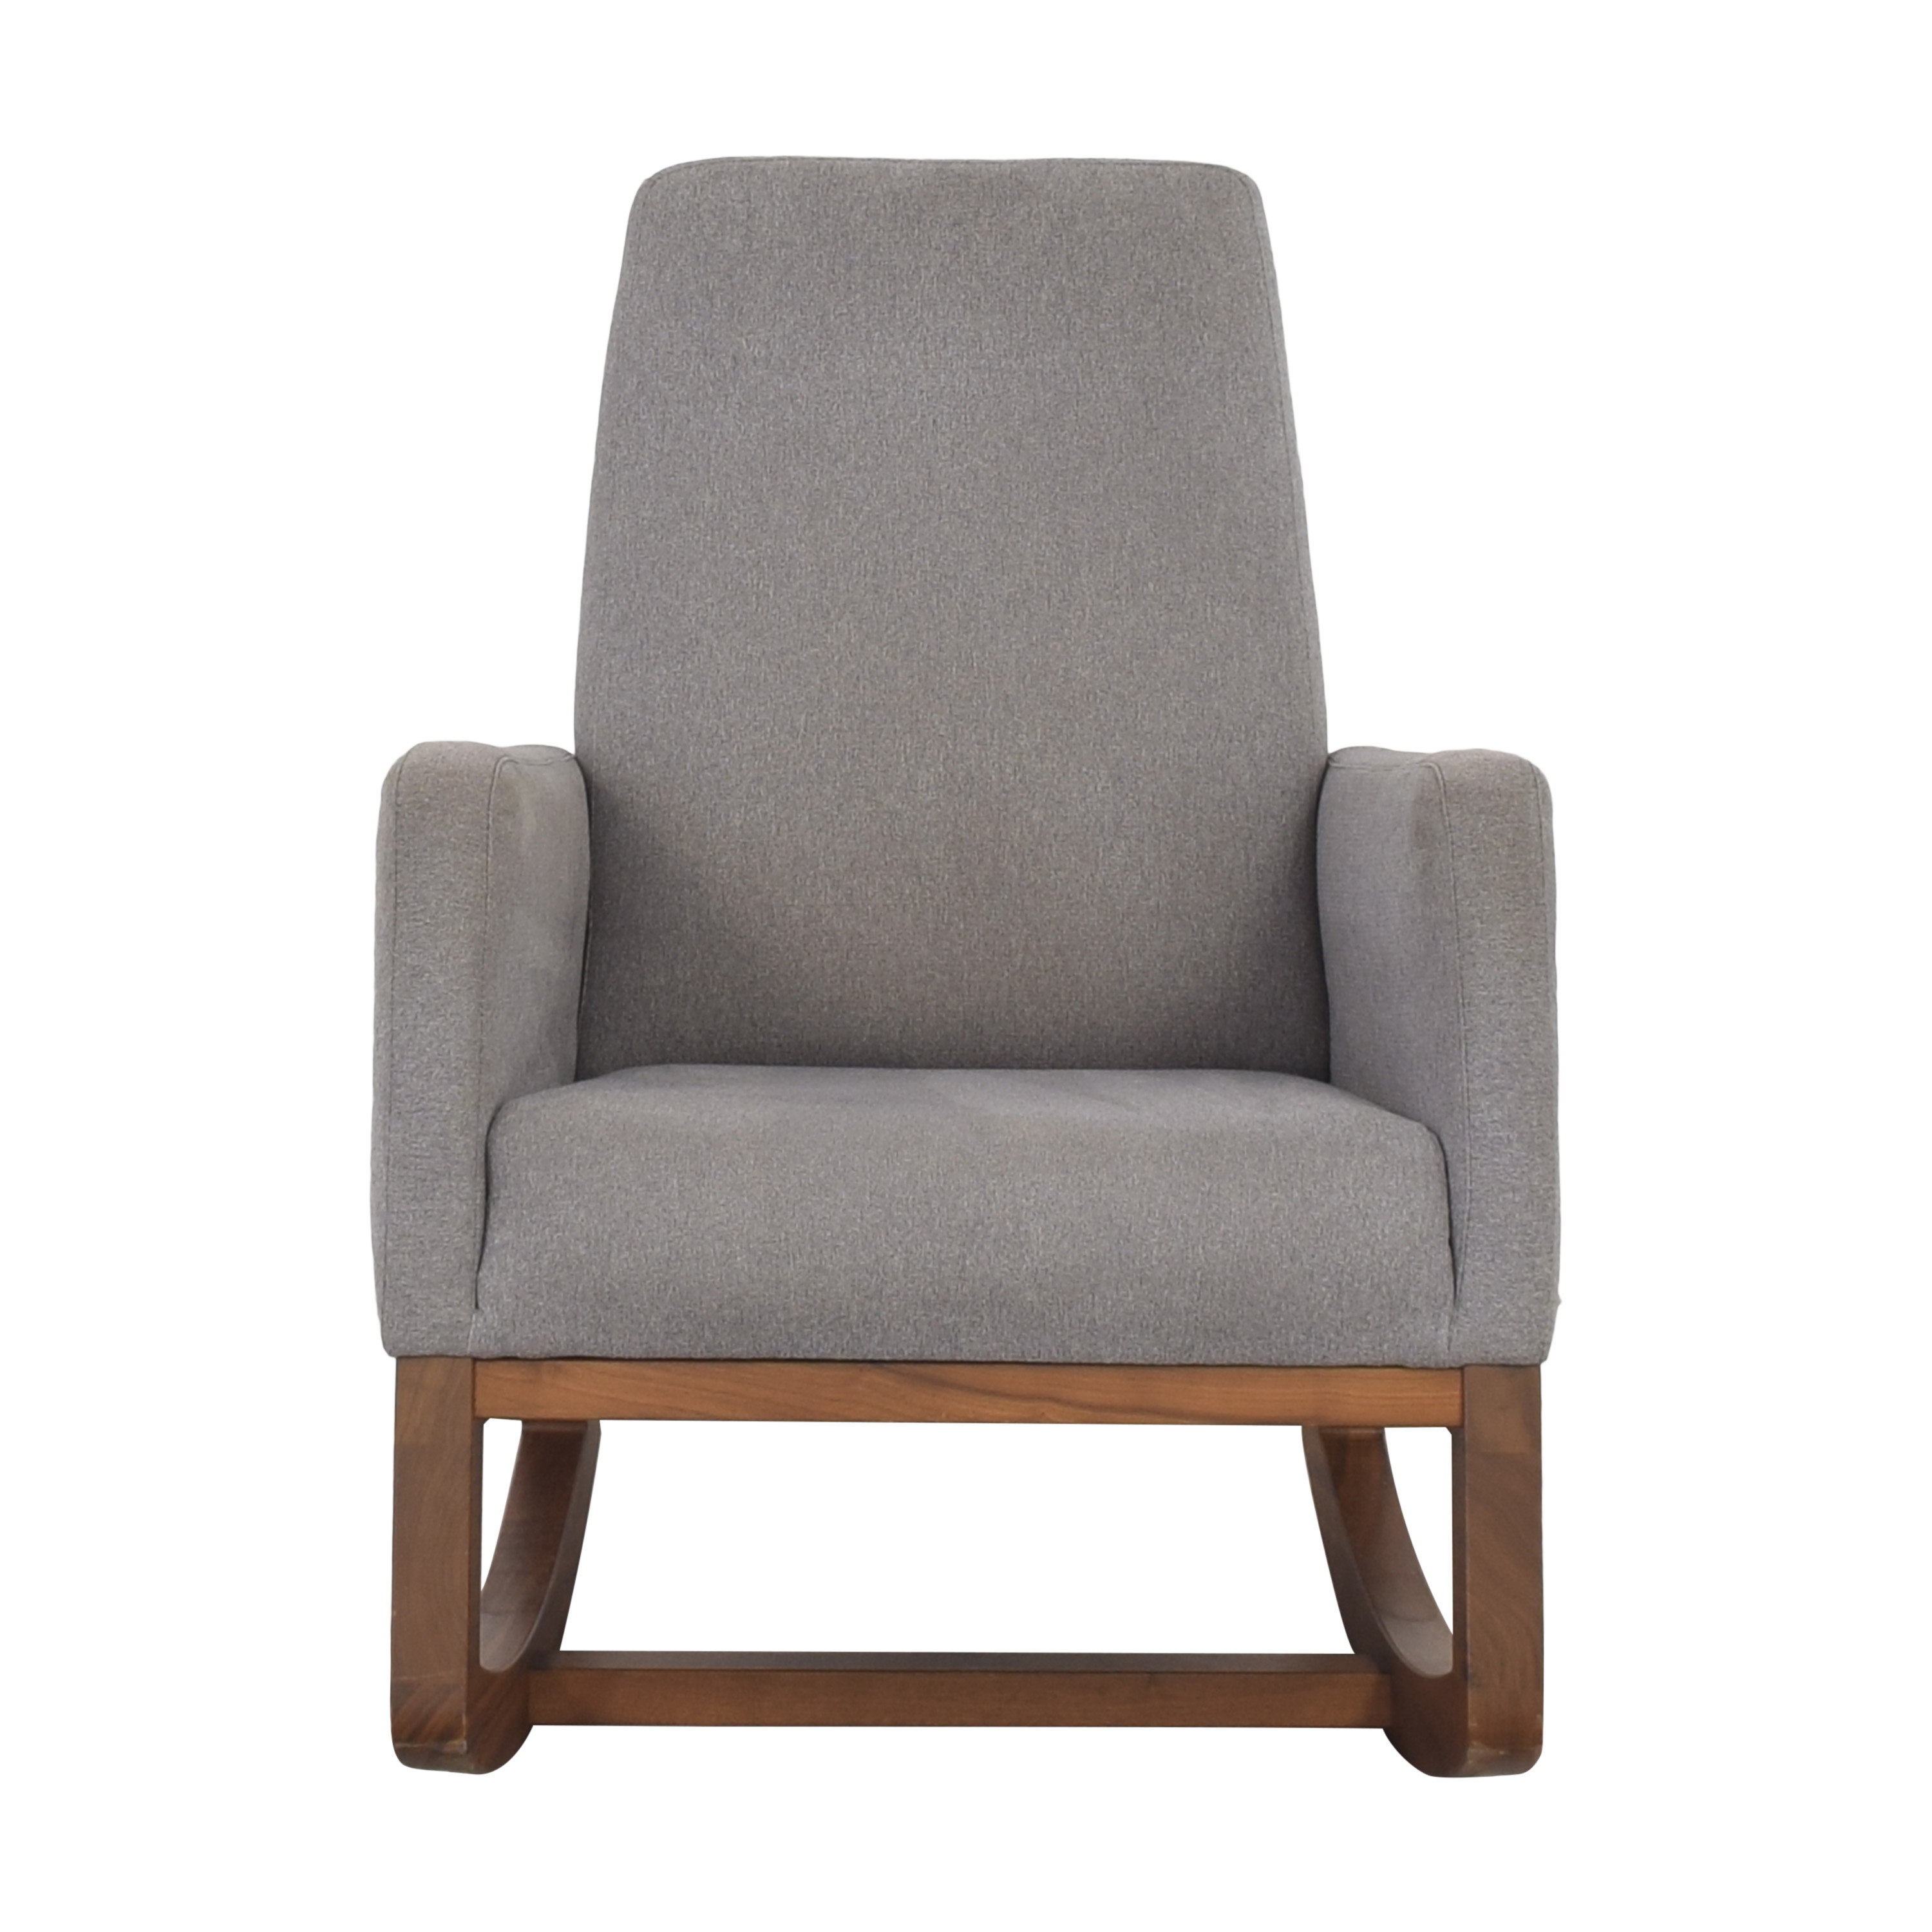 shop Crate & Barrel by Monte Modern Joya Rocking Chair and Ottoman Crate & Barrel Accent Chairs